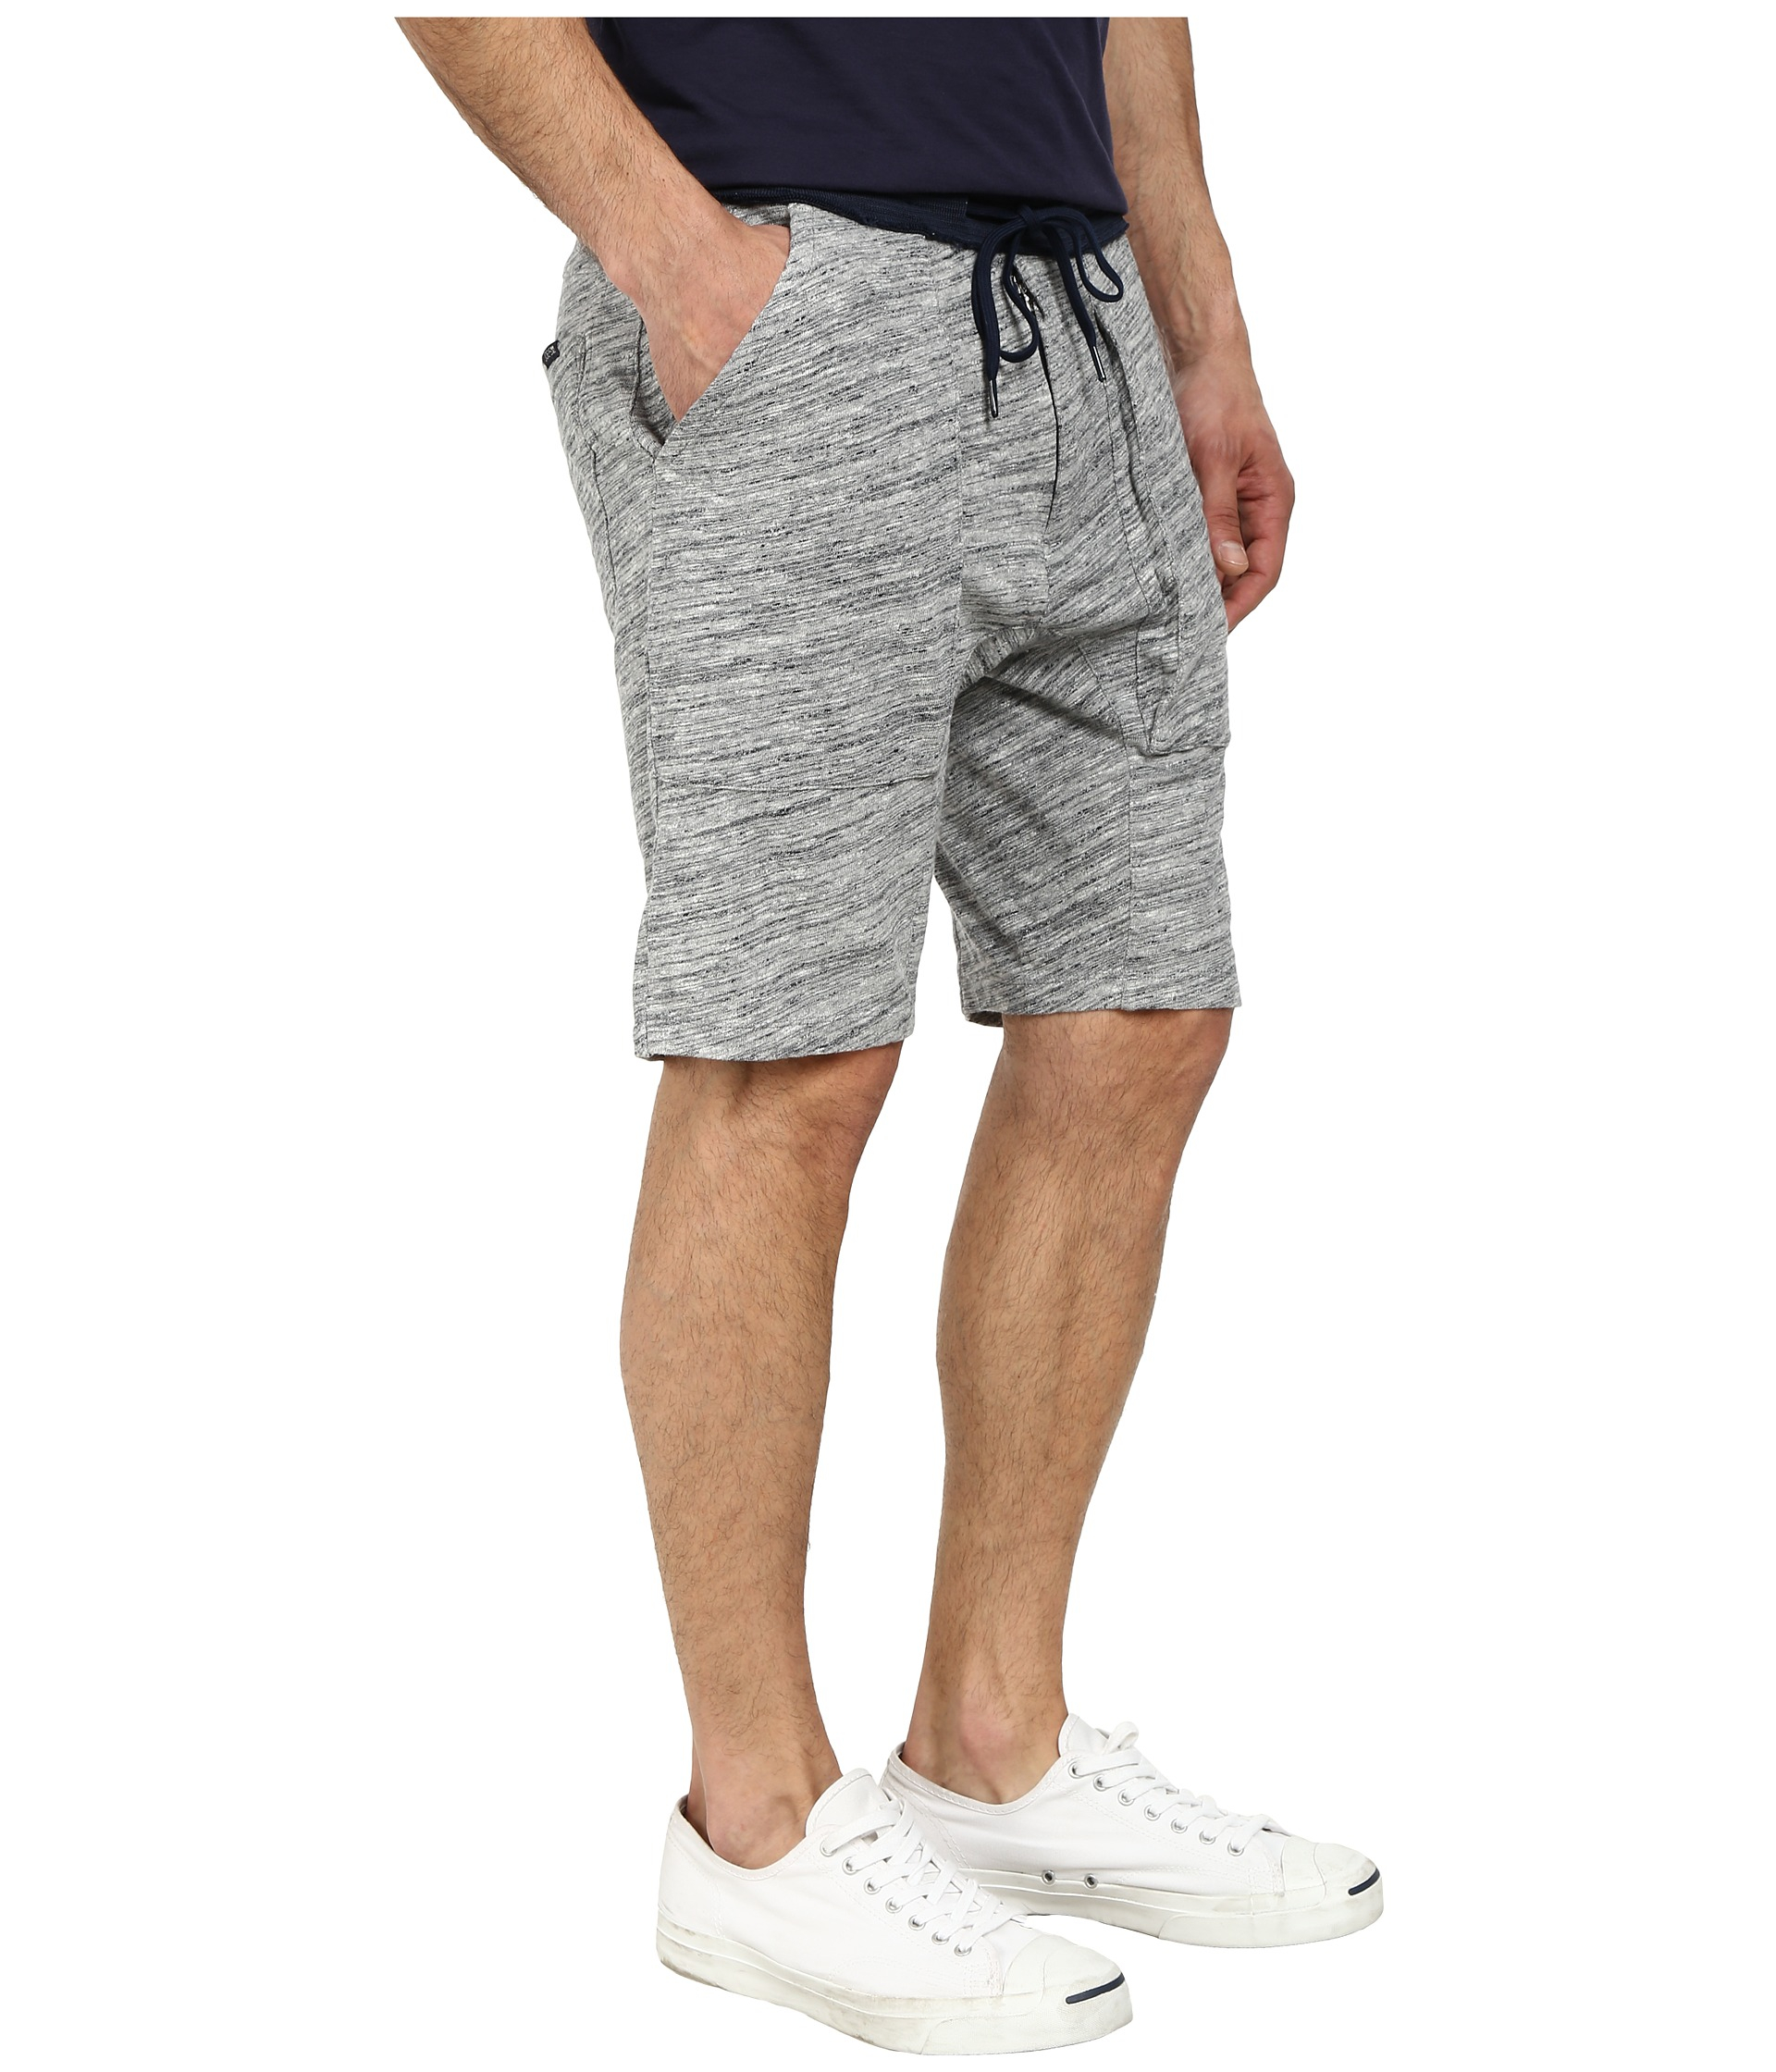 Fantastic Men39s Star Print Denim Jogger Shorts JC383  GStyleUSAcom